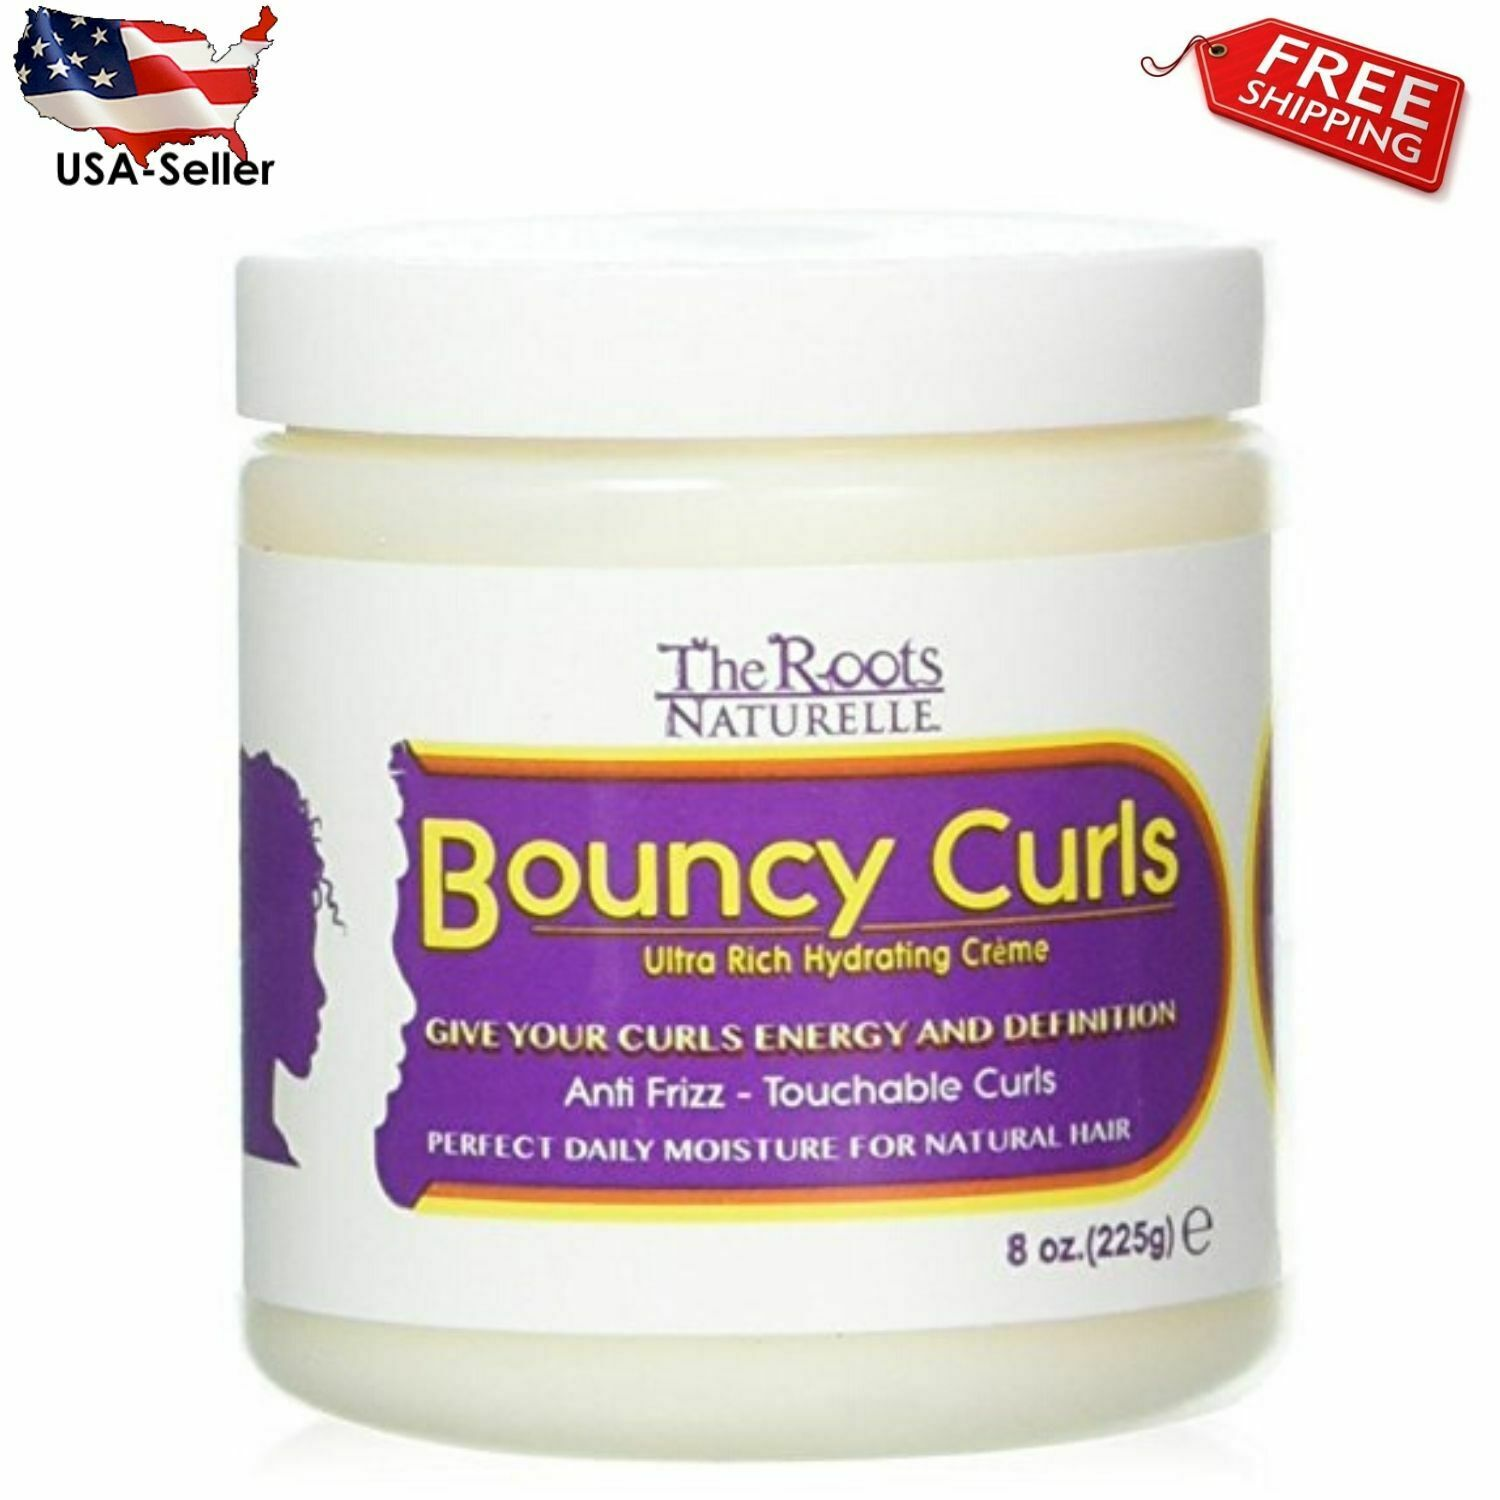 Curly Hair Products Bouncy Curls, Moisturizing Anti-frizz Cr